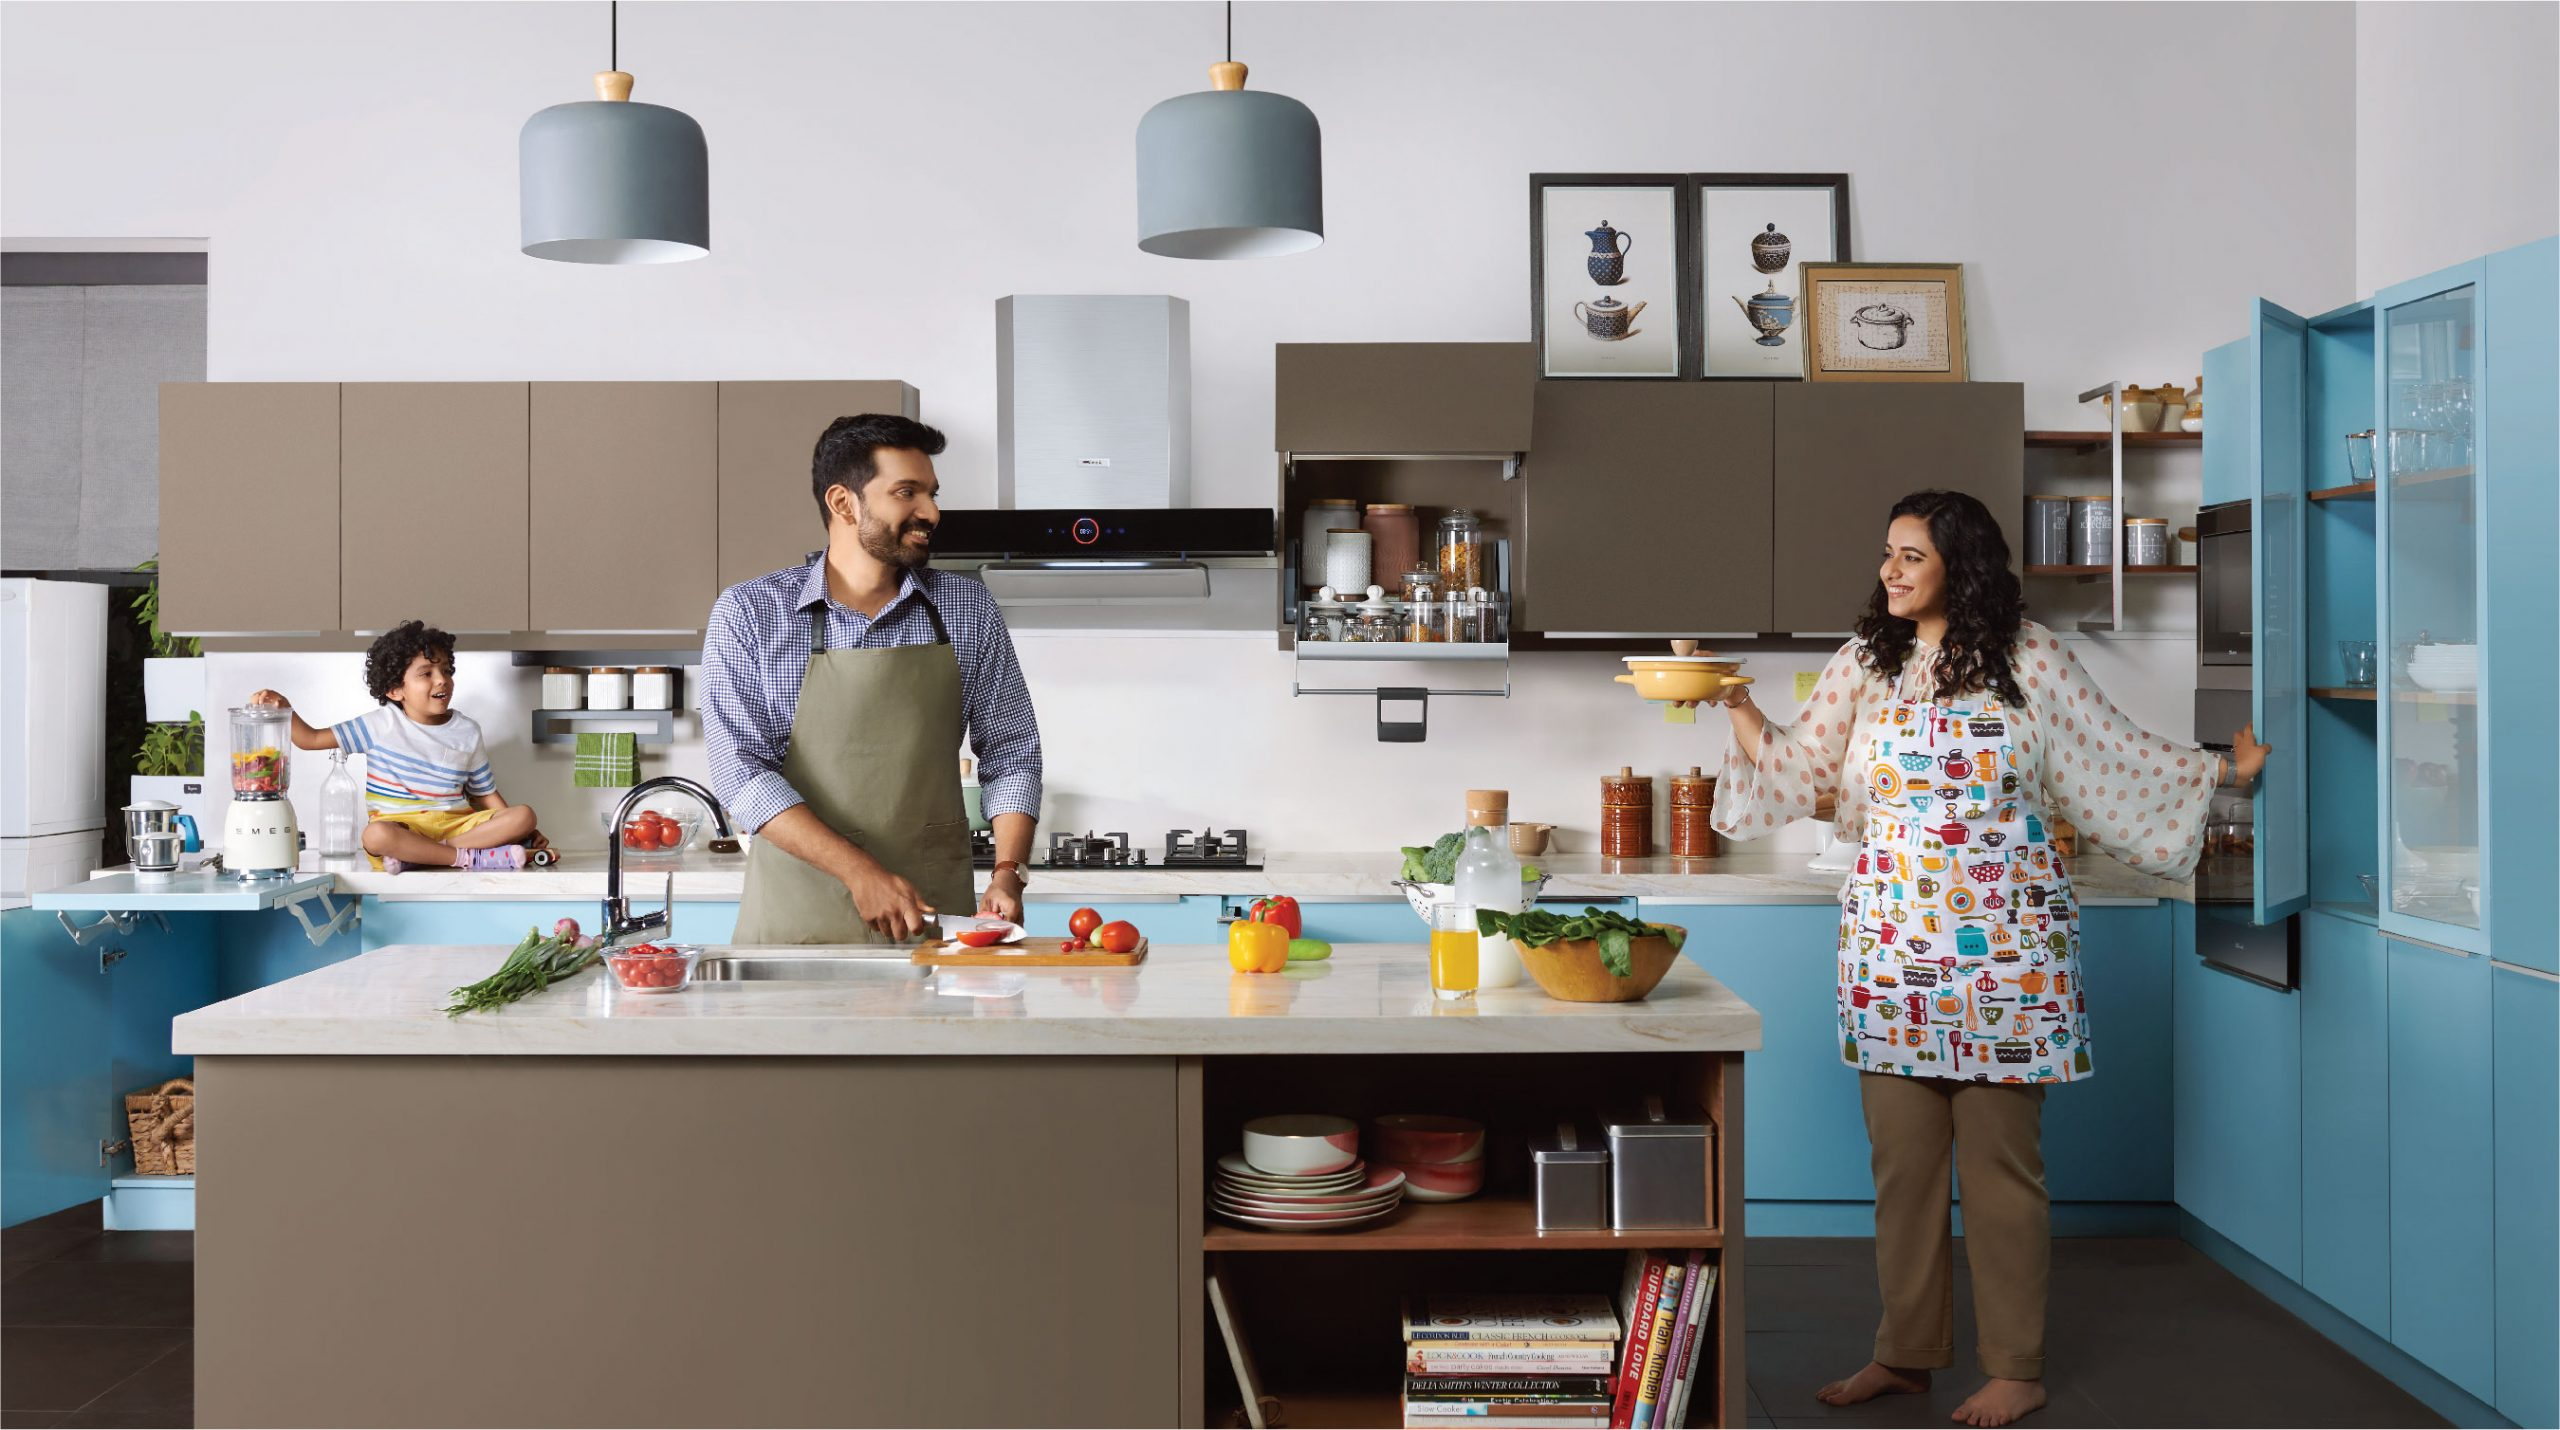 Ideas for a Low-Cost Modular Kitchen